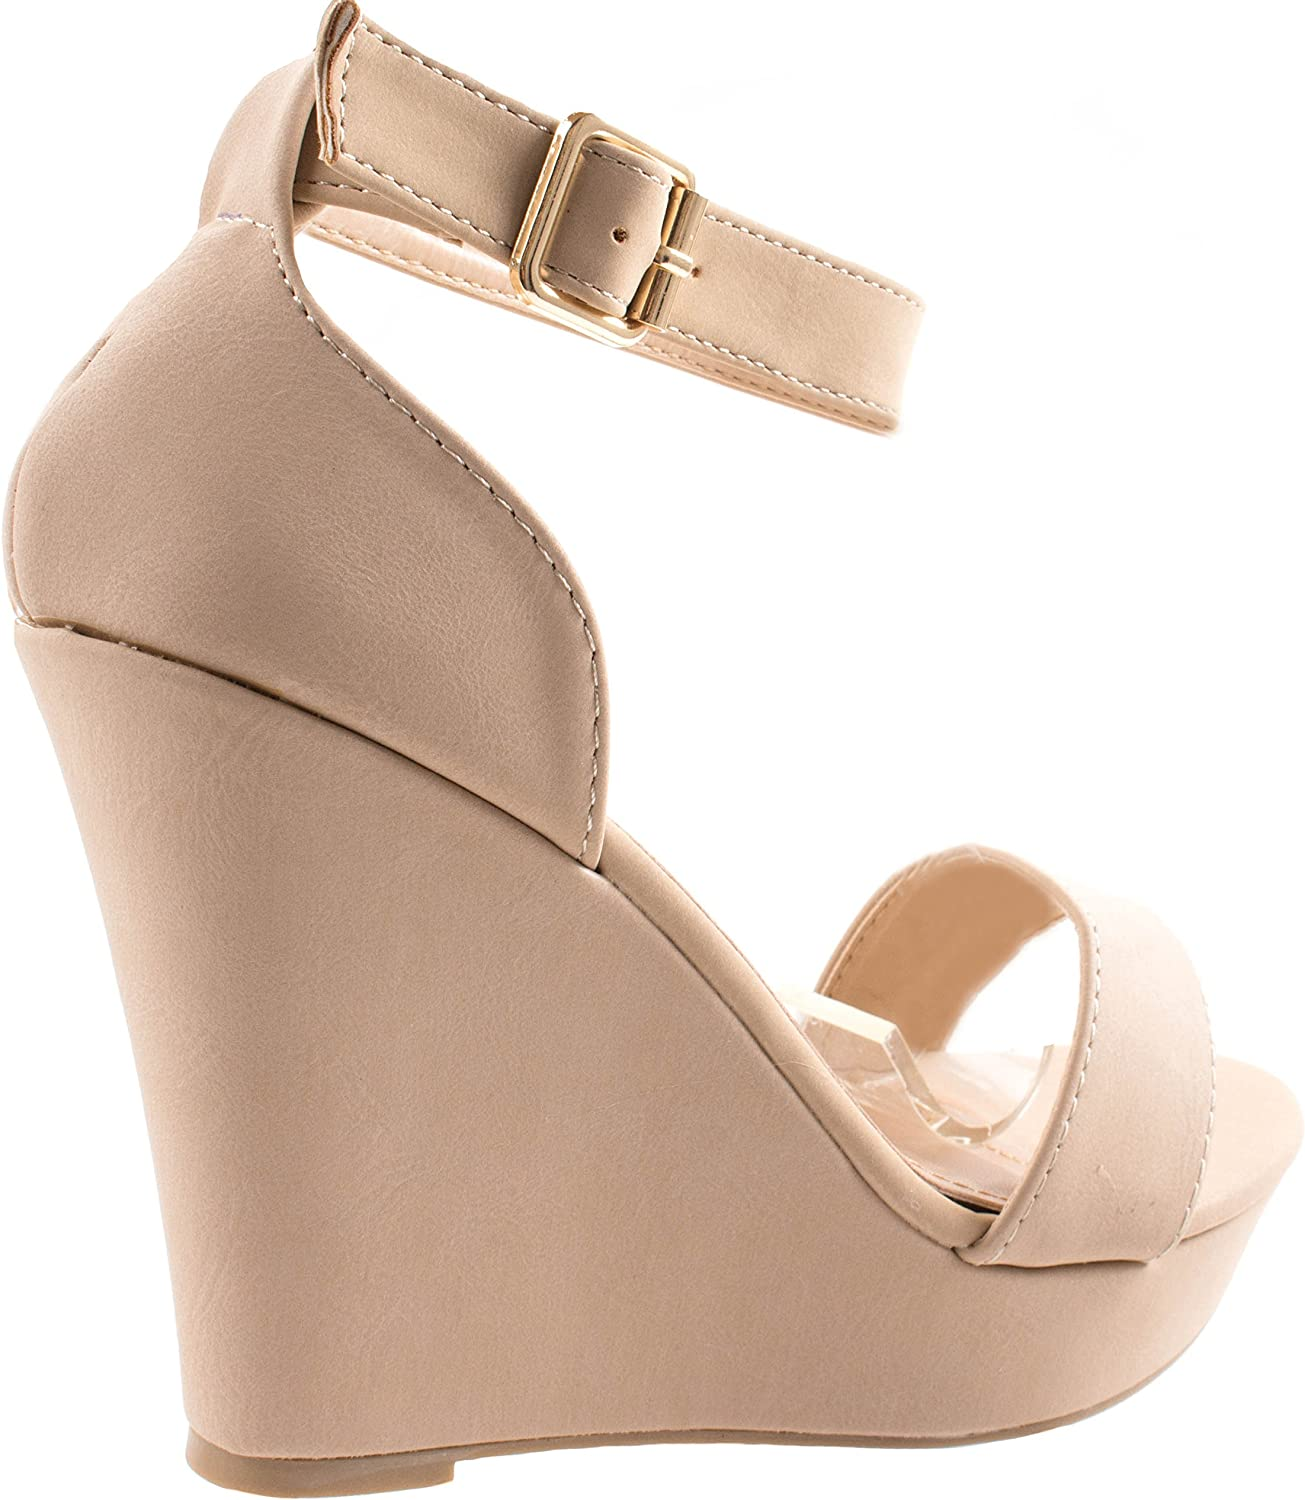 US TOP Moda Womens Beryl-1 Beige Round//Open Toe One Strap Heel Sandal Pumps with Ankle Braclet 10 D M